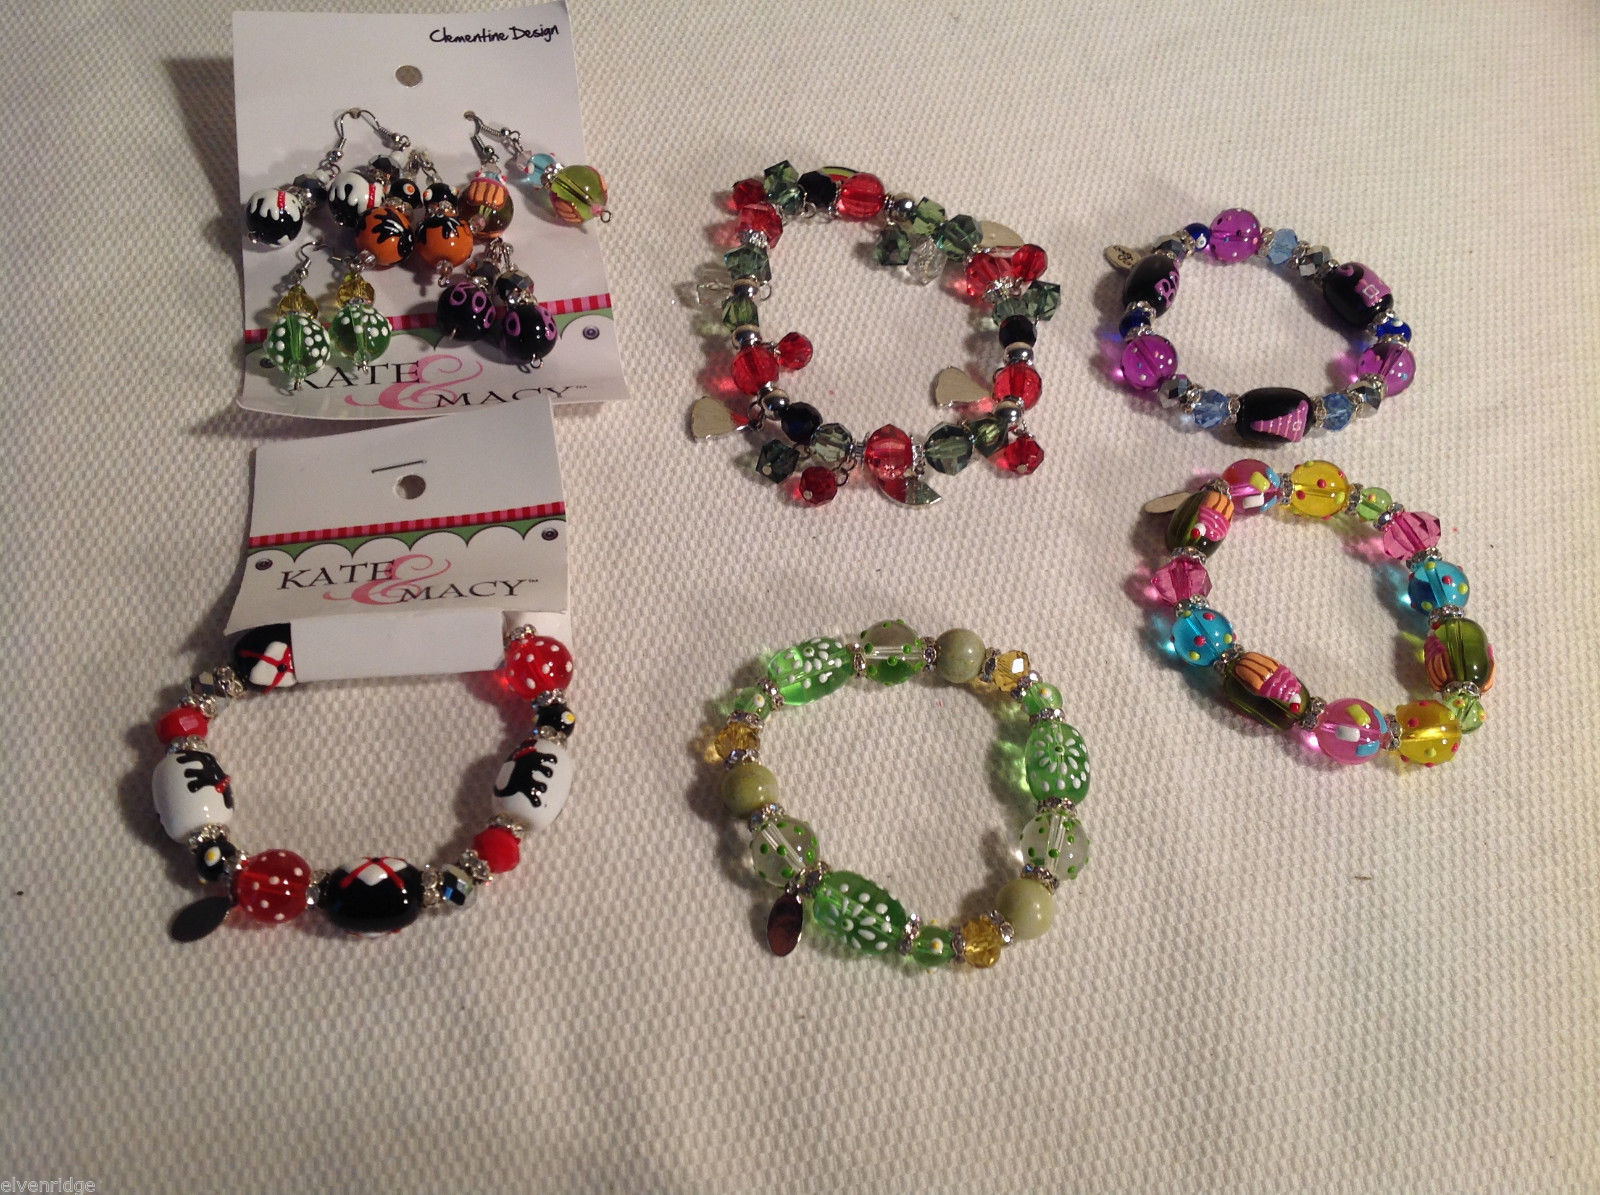 10 pc glass lampwork bead jewellery lot - 5 bracelets, 5 earrings Kate and Macy